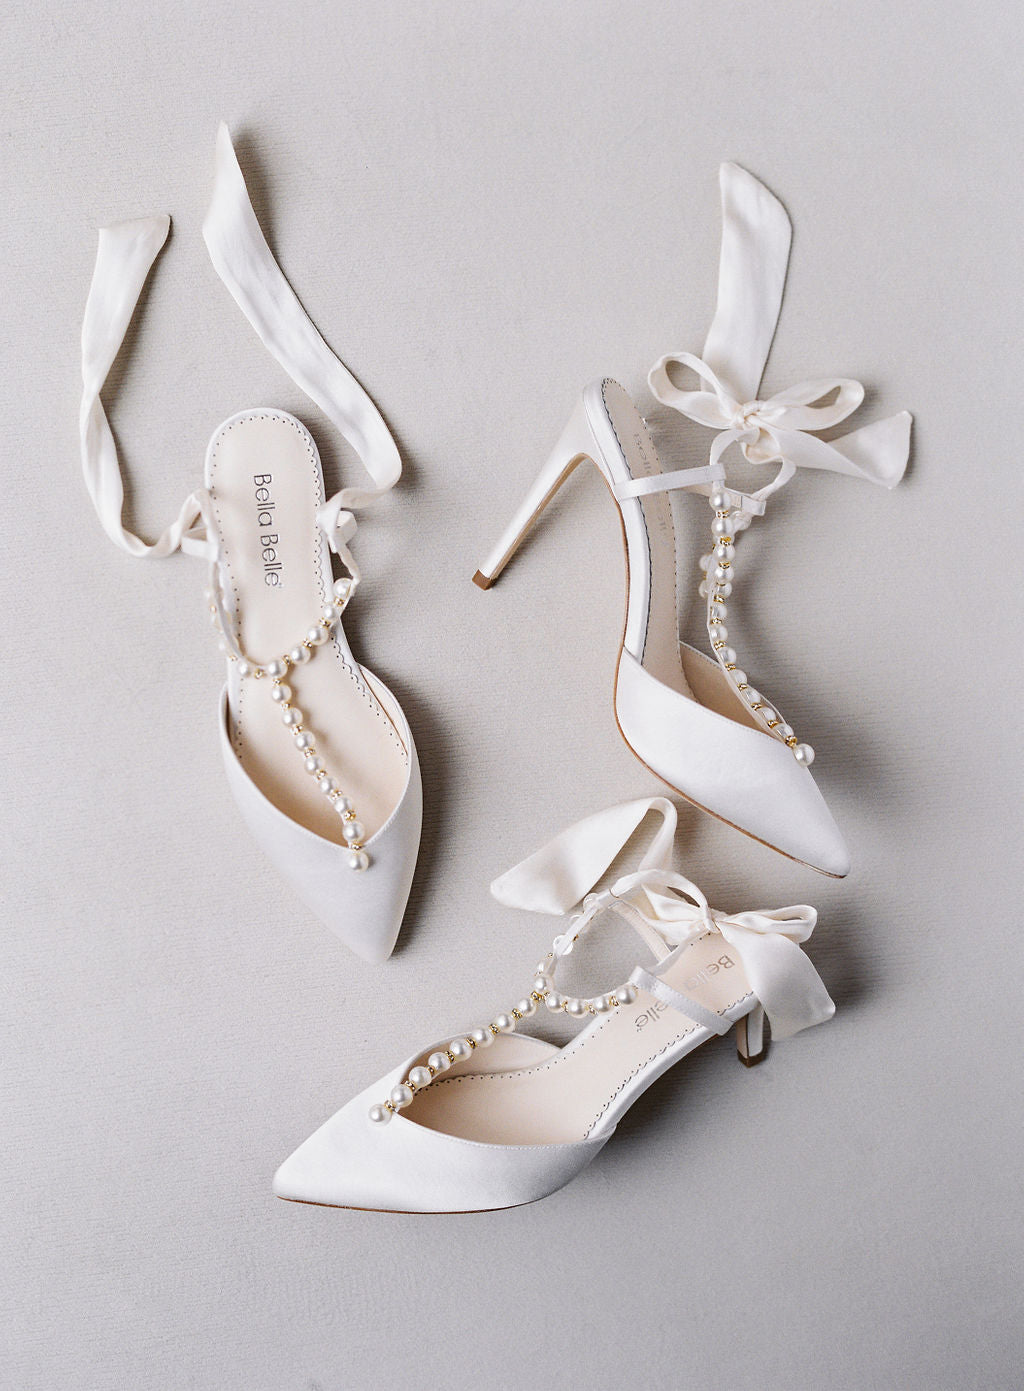 bella belle shoes ivory pearl silk bow wedding shoe